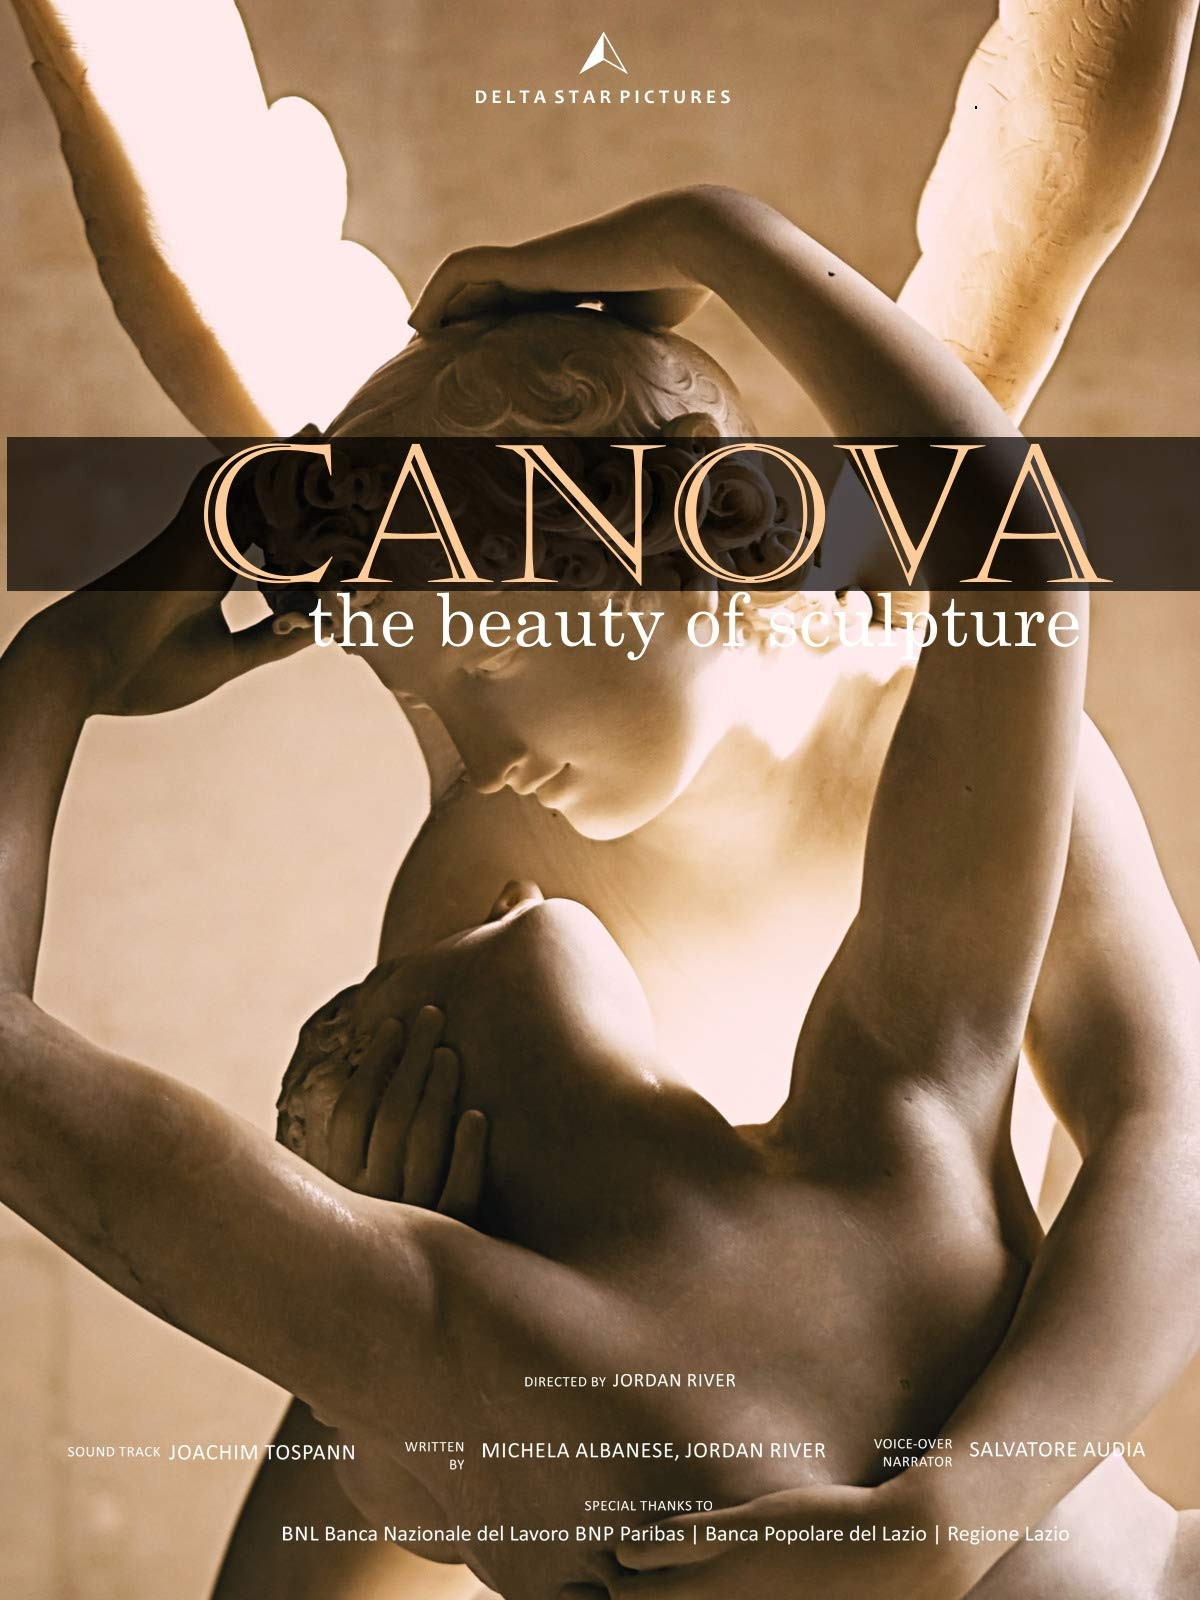 CANOVA the beauty of sculpture